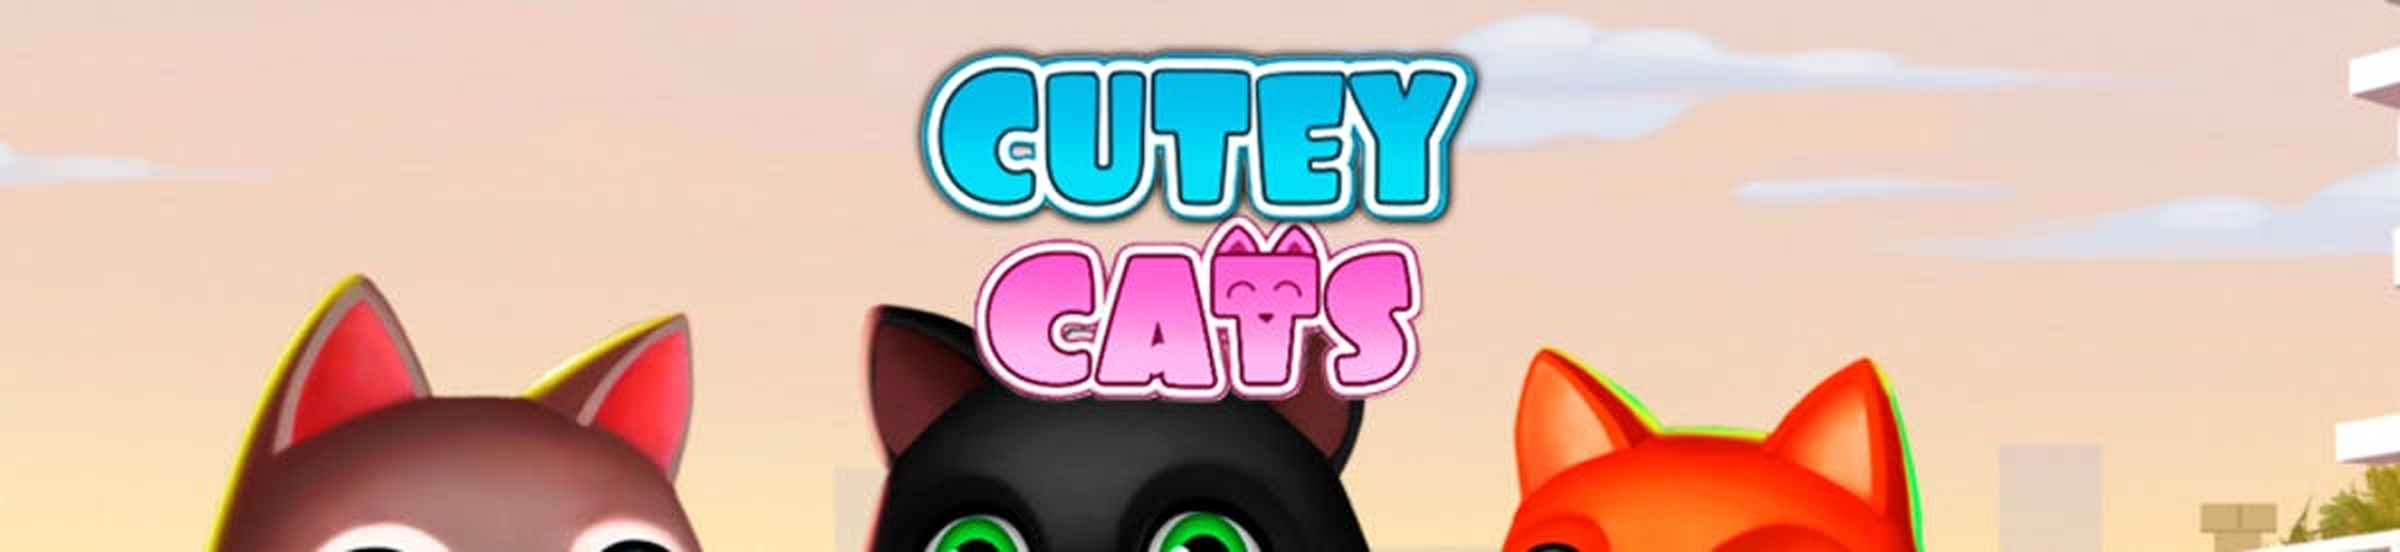 The Cutey Cats Online Slot Demo Game by Caleta Gaming